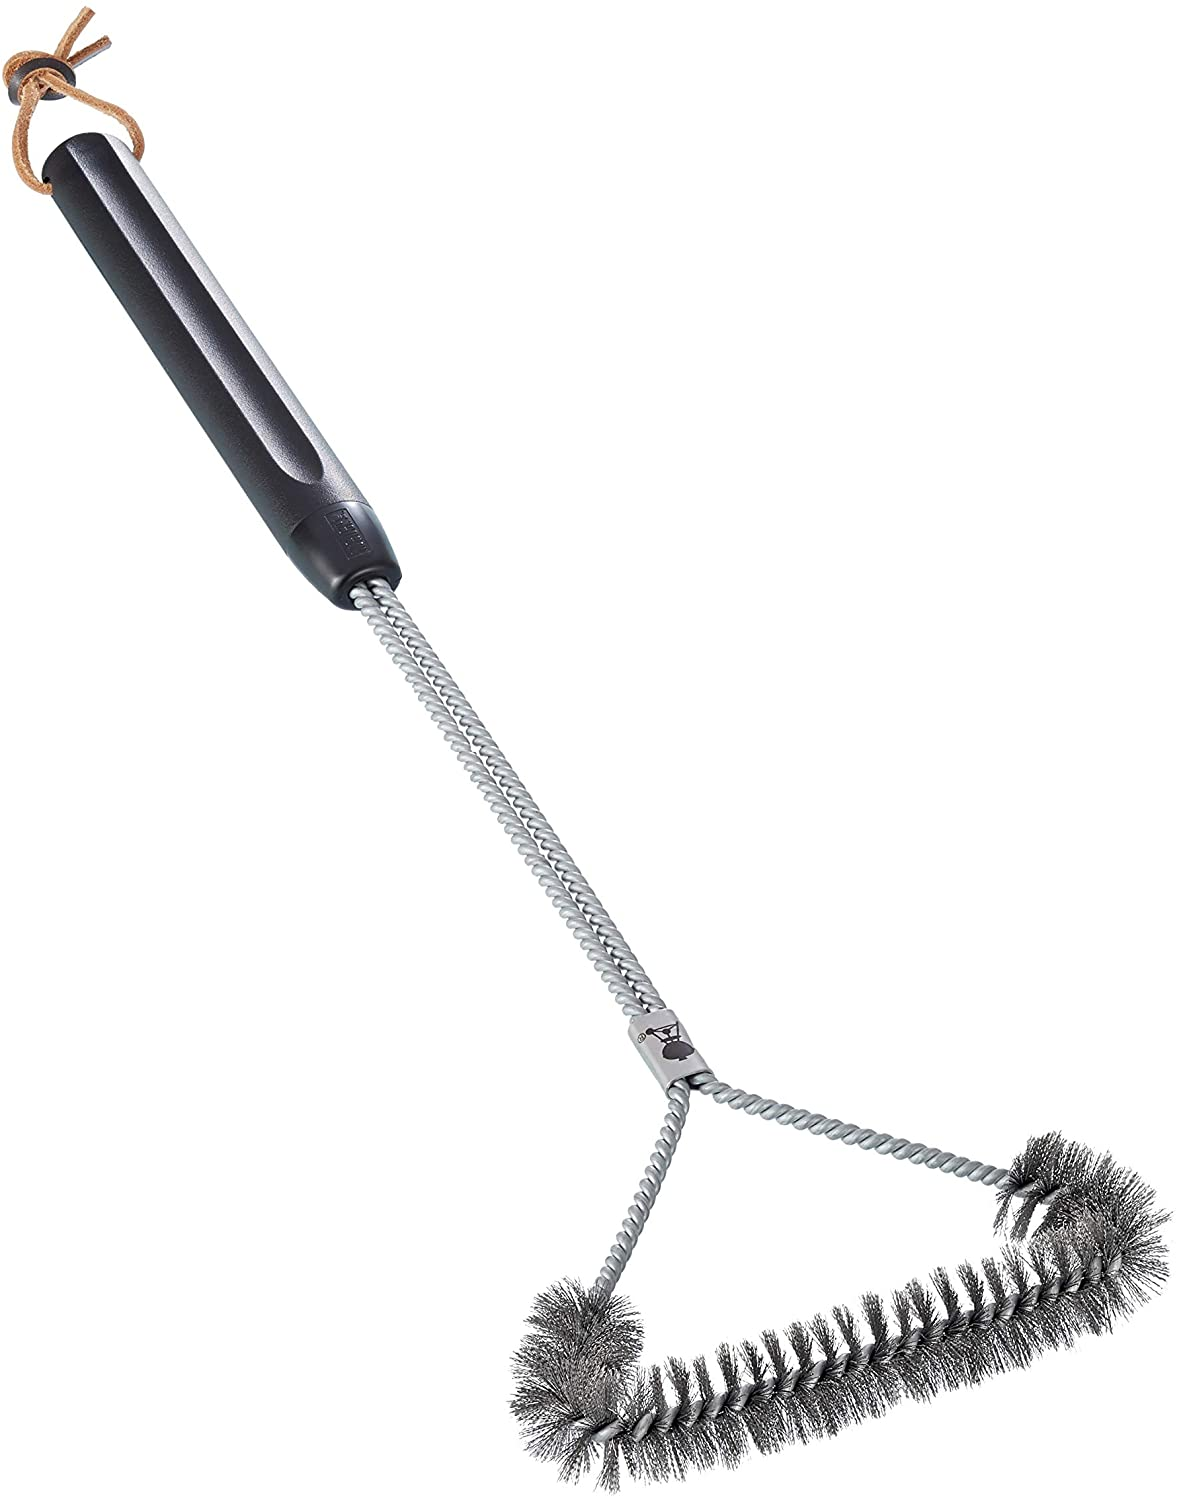 Weber Grill Brush Review